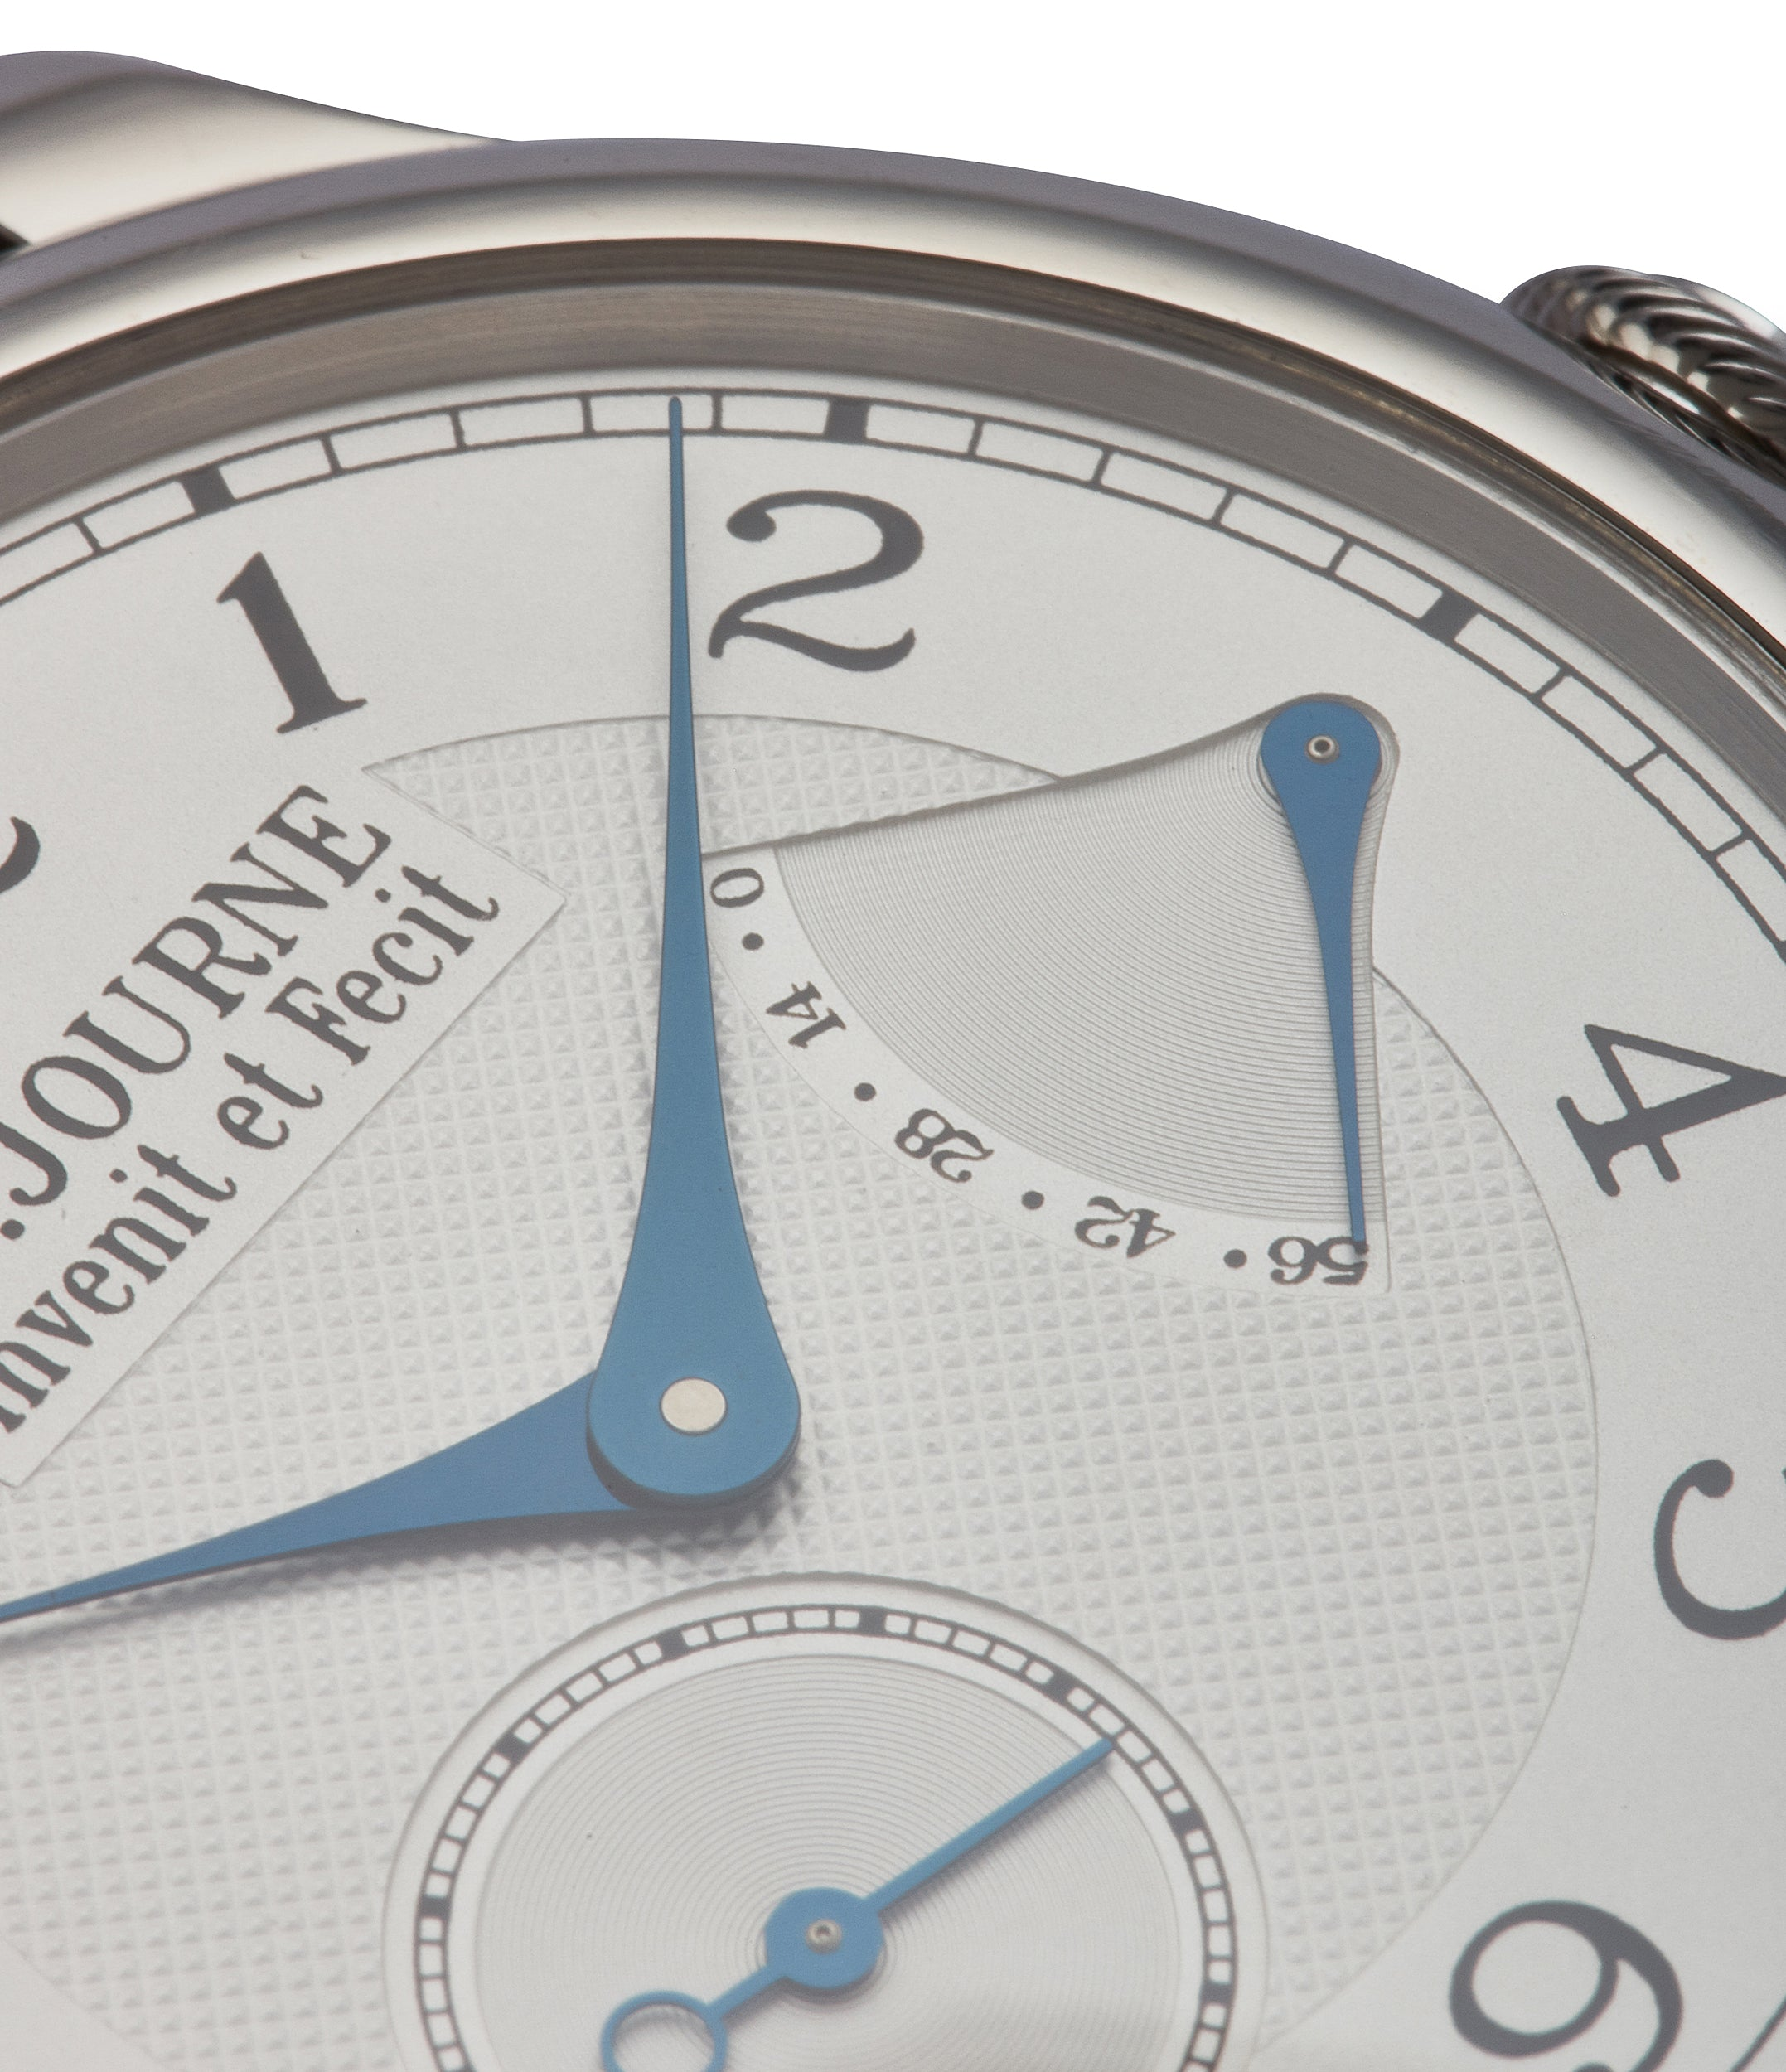 silver guilloche dial Journe Chronometre Souverain platinum 40mm Cal. 1304 manual-winding silver dial time-only dress watch for sale online at A Collected Man London UK specialist independent watchmakers